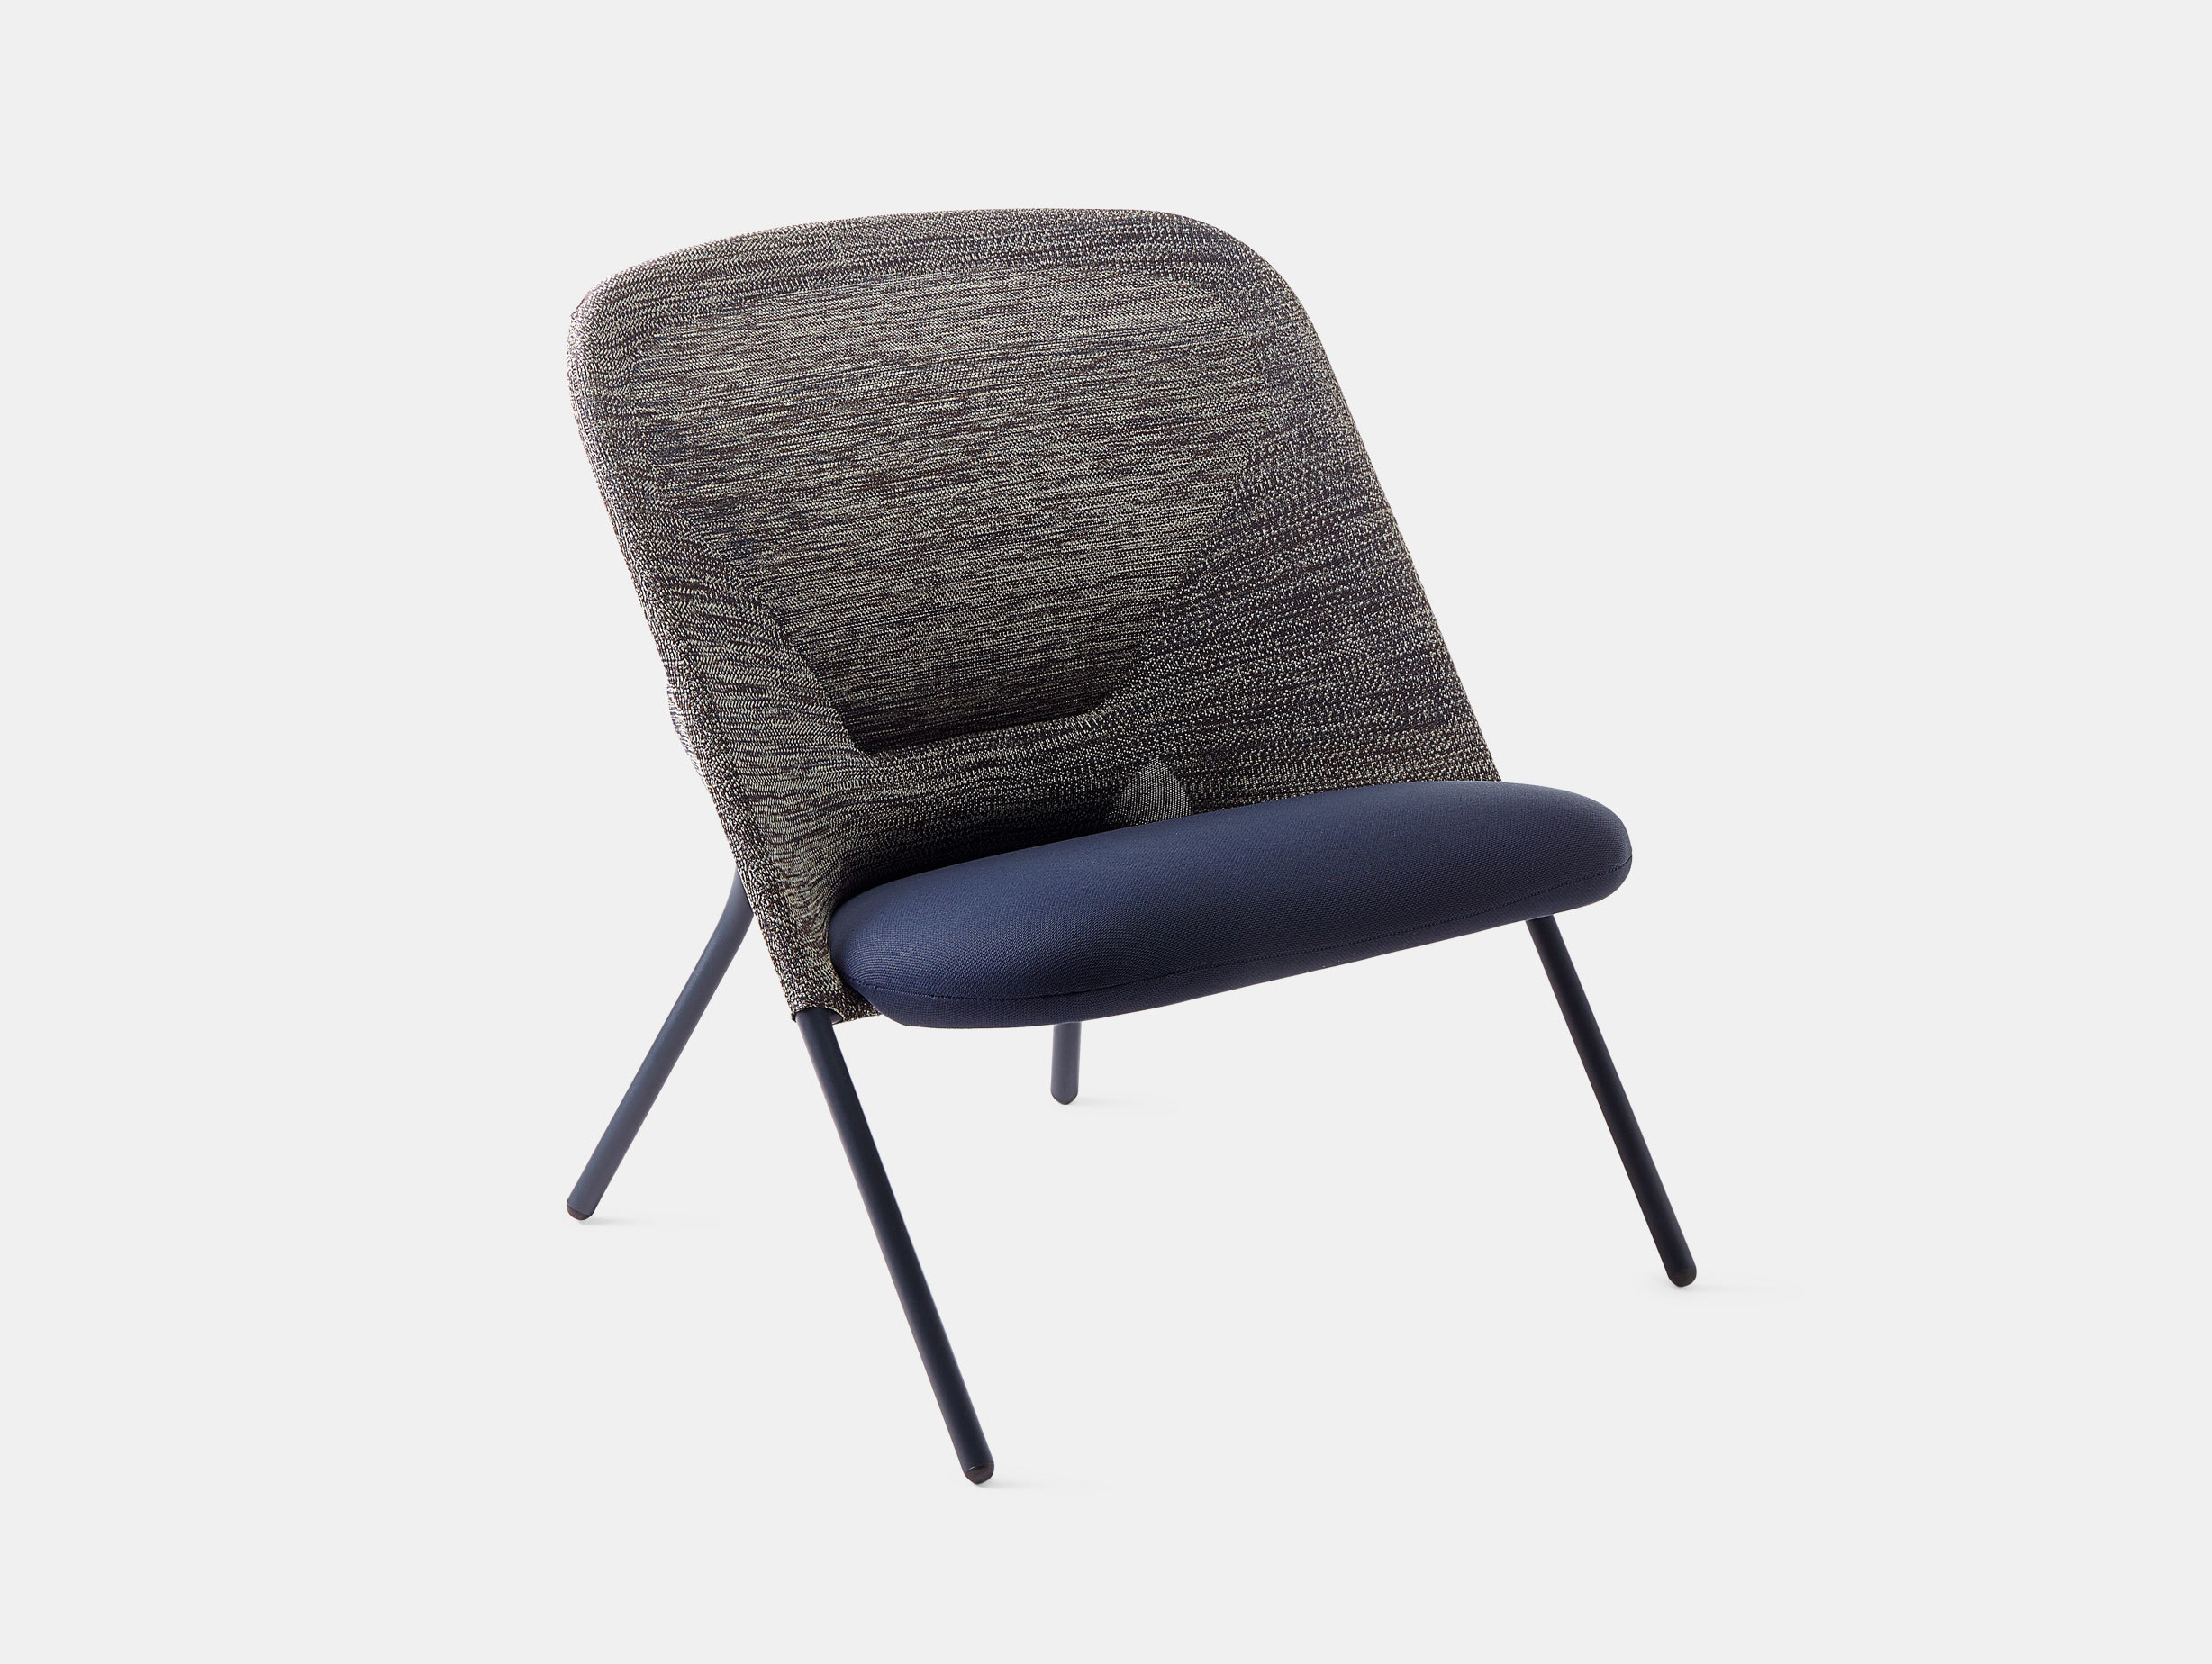 Shift Lounge Chair image 1